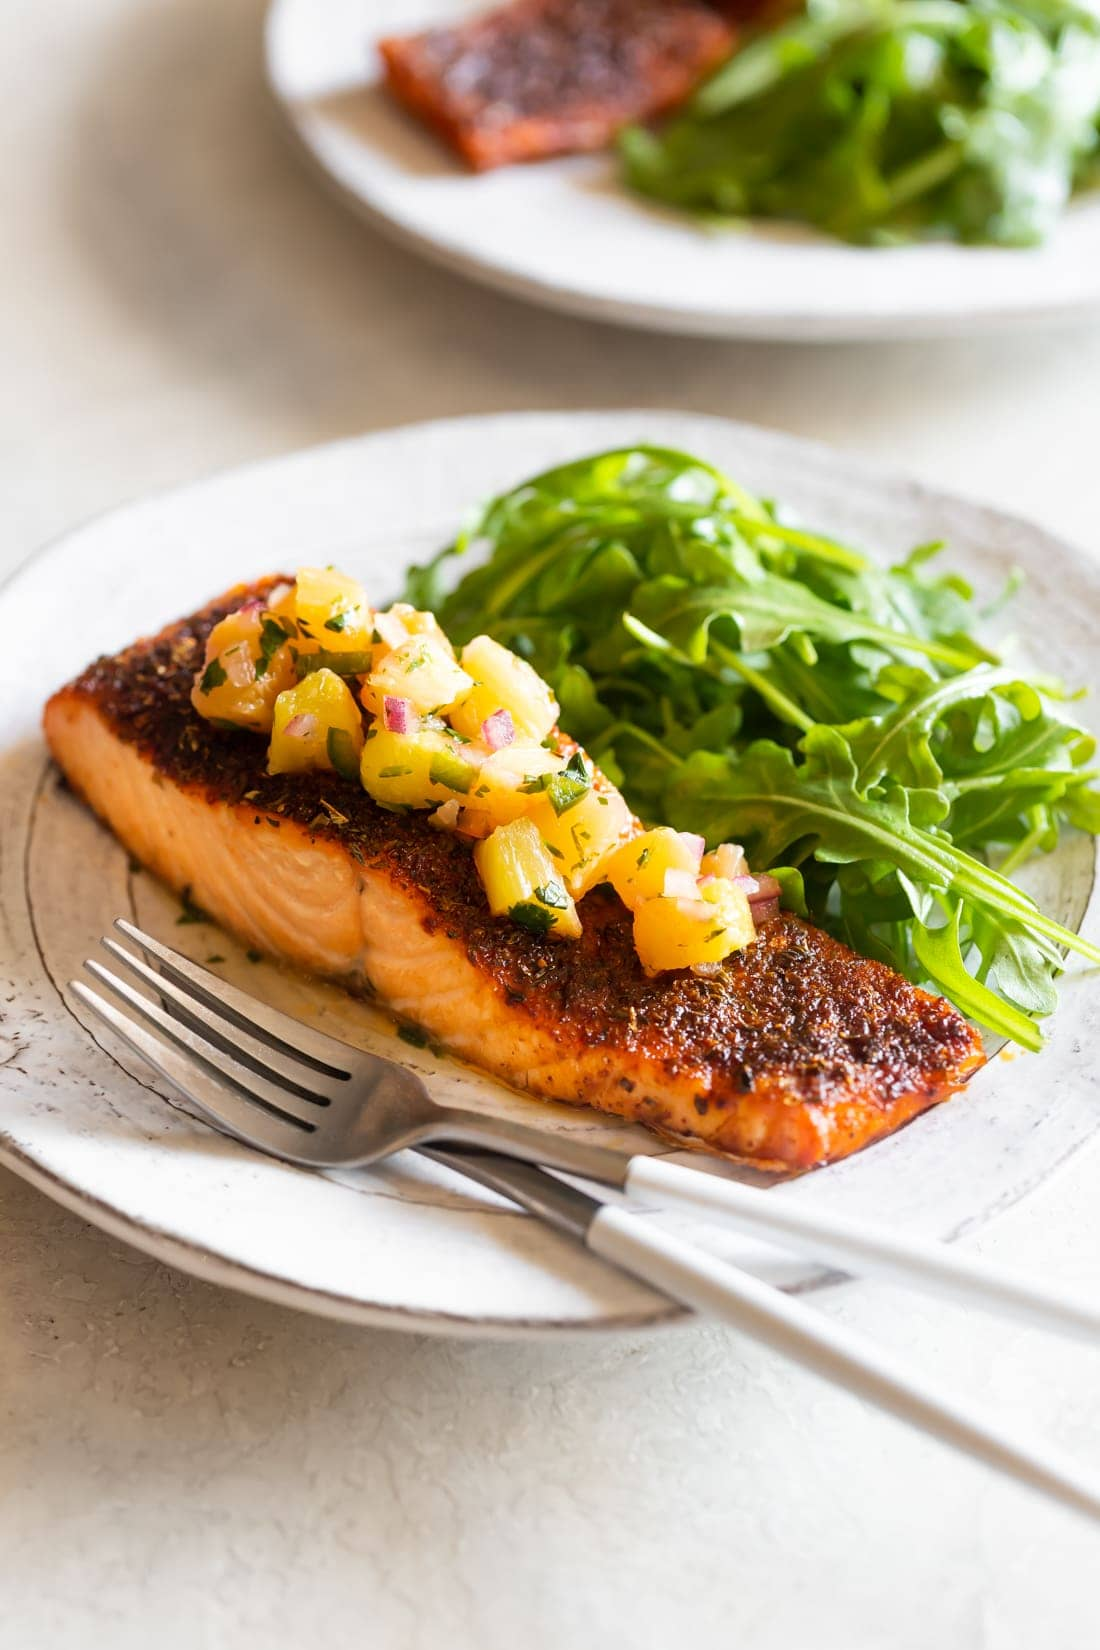 blackened salmon with pineapple jalapeno salsa on a white plate with arugula